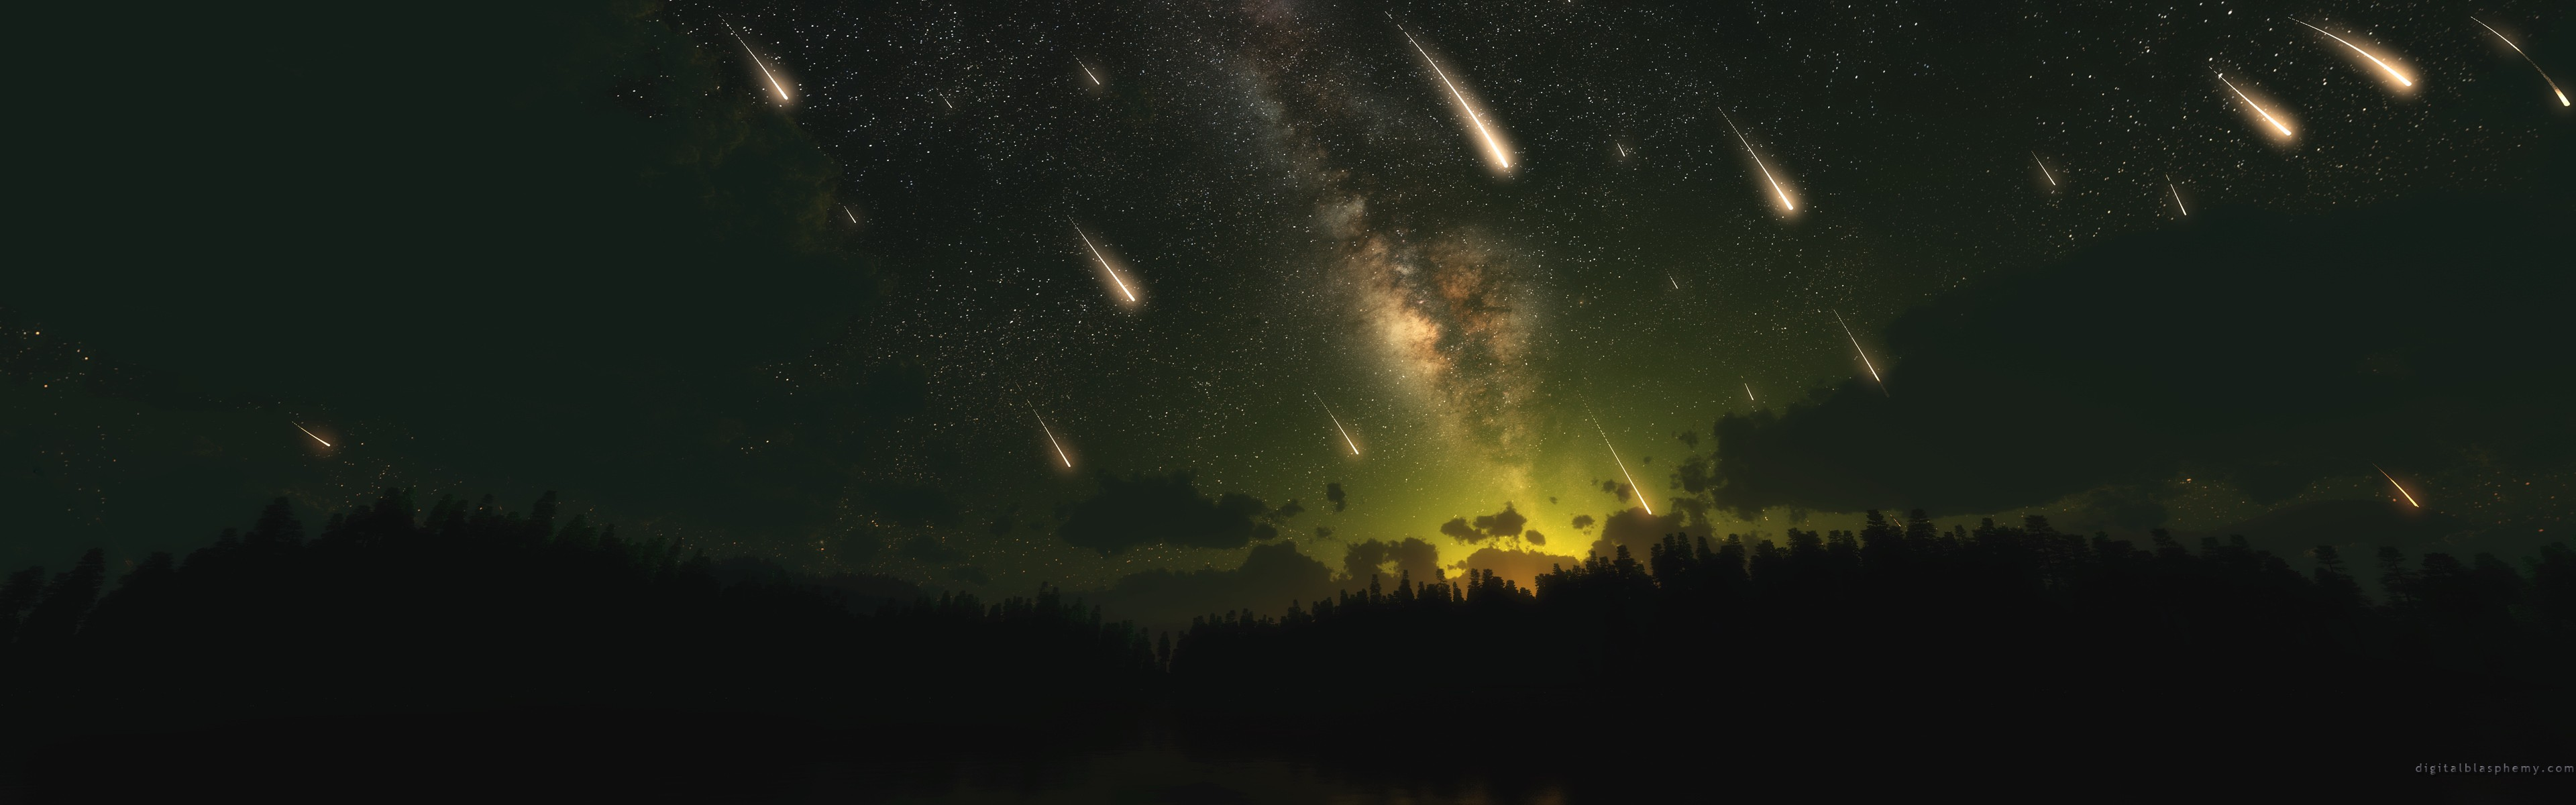 space dual cosmos meteorite skyscapes meteor shower dual monitor 3840x1200